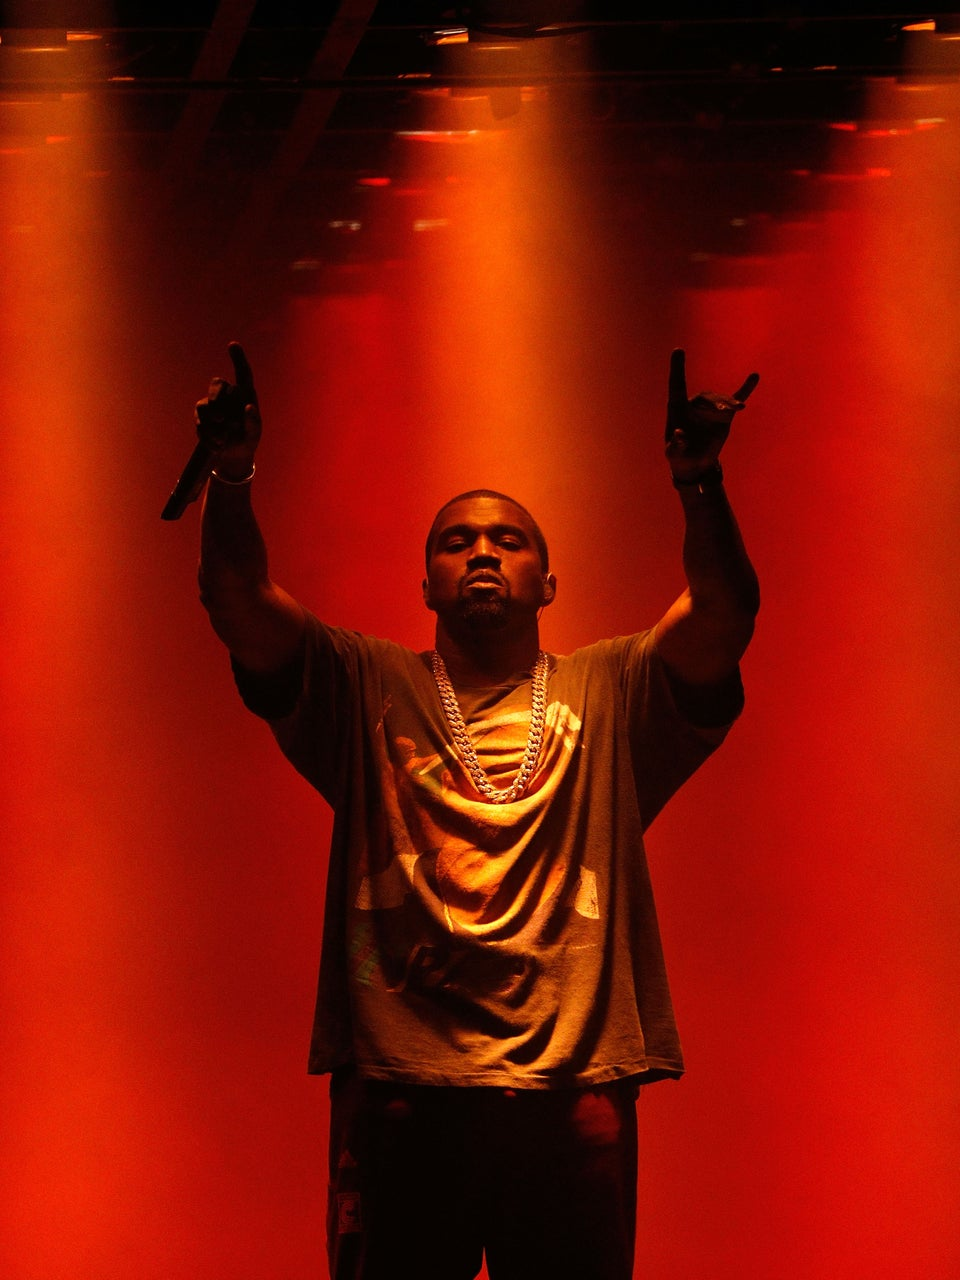 Meet YE: The Rapper Formerly Known As Kanye West